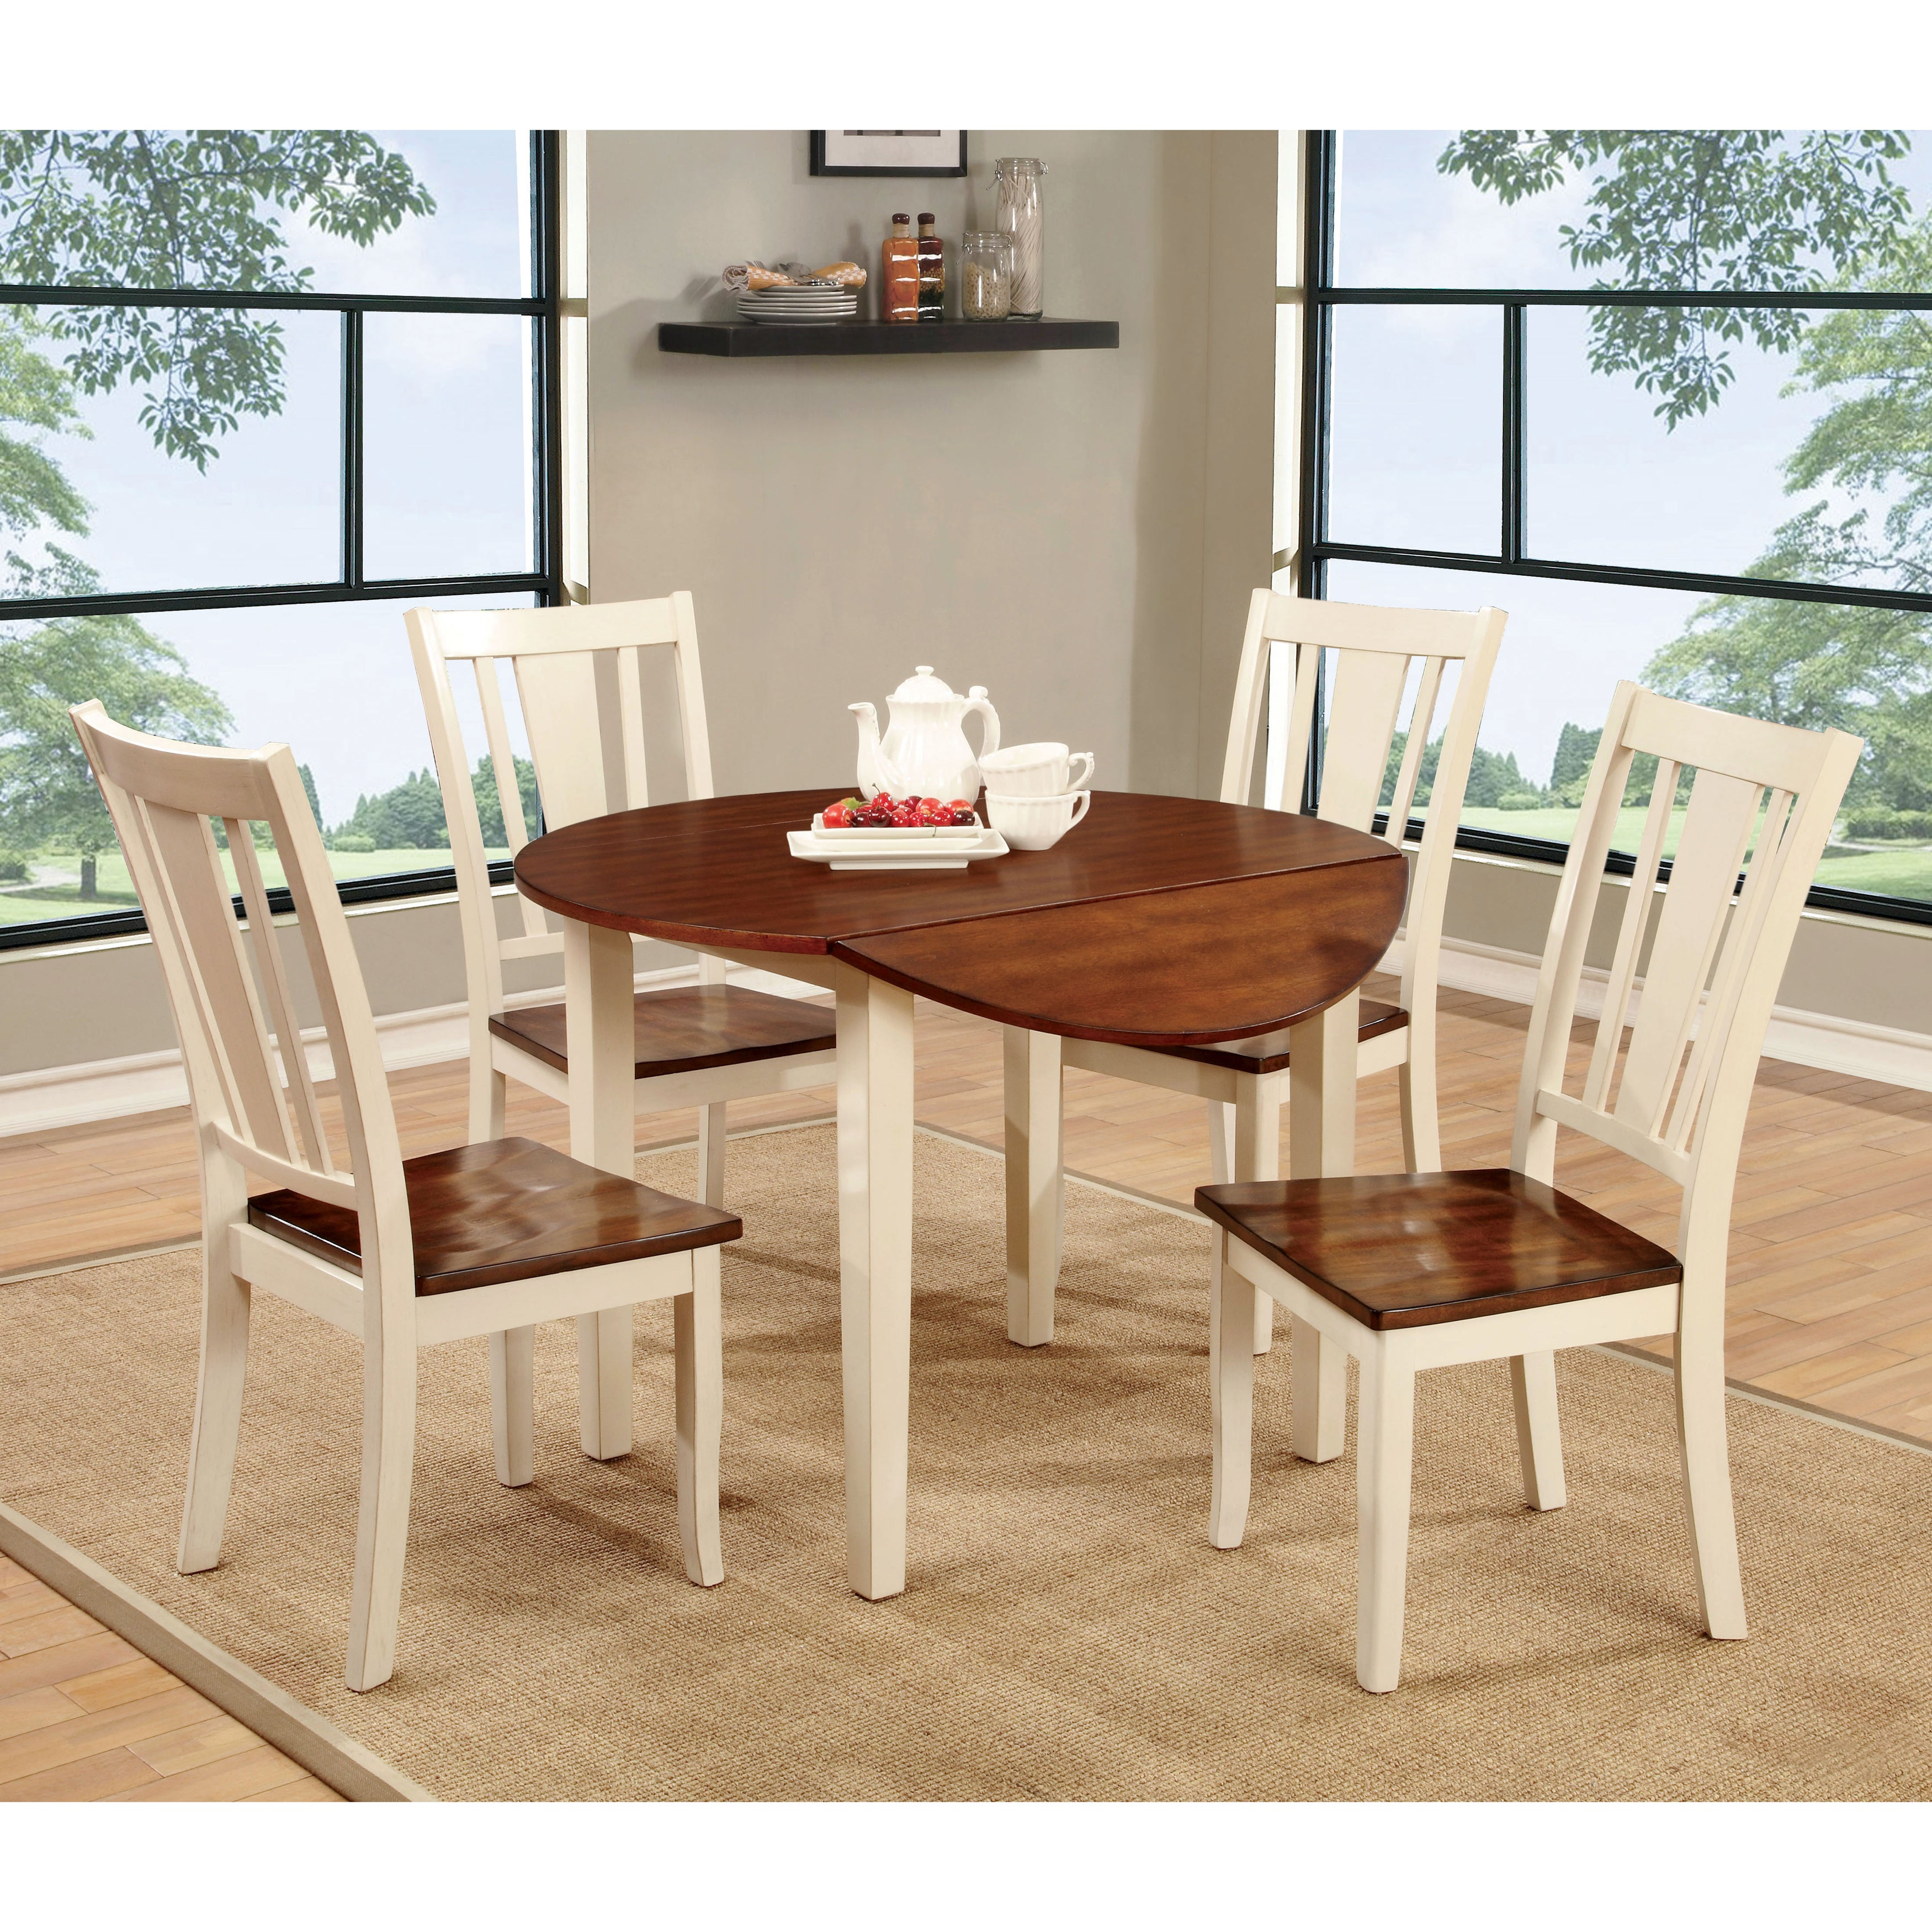 Furniture of America Betsy Jane 5-Piece Country Style Rou...